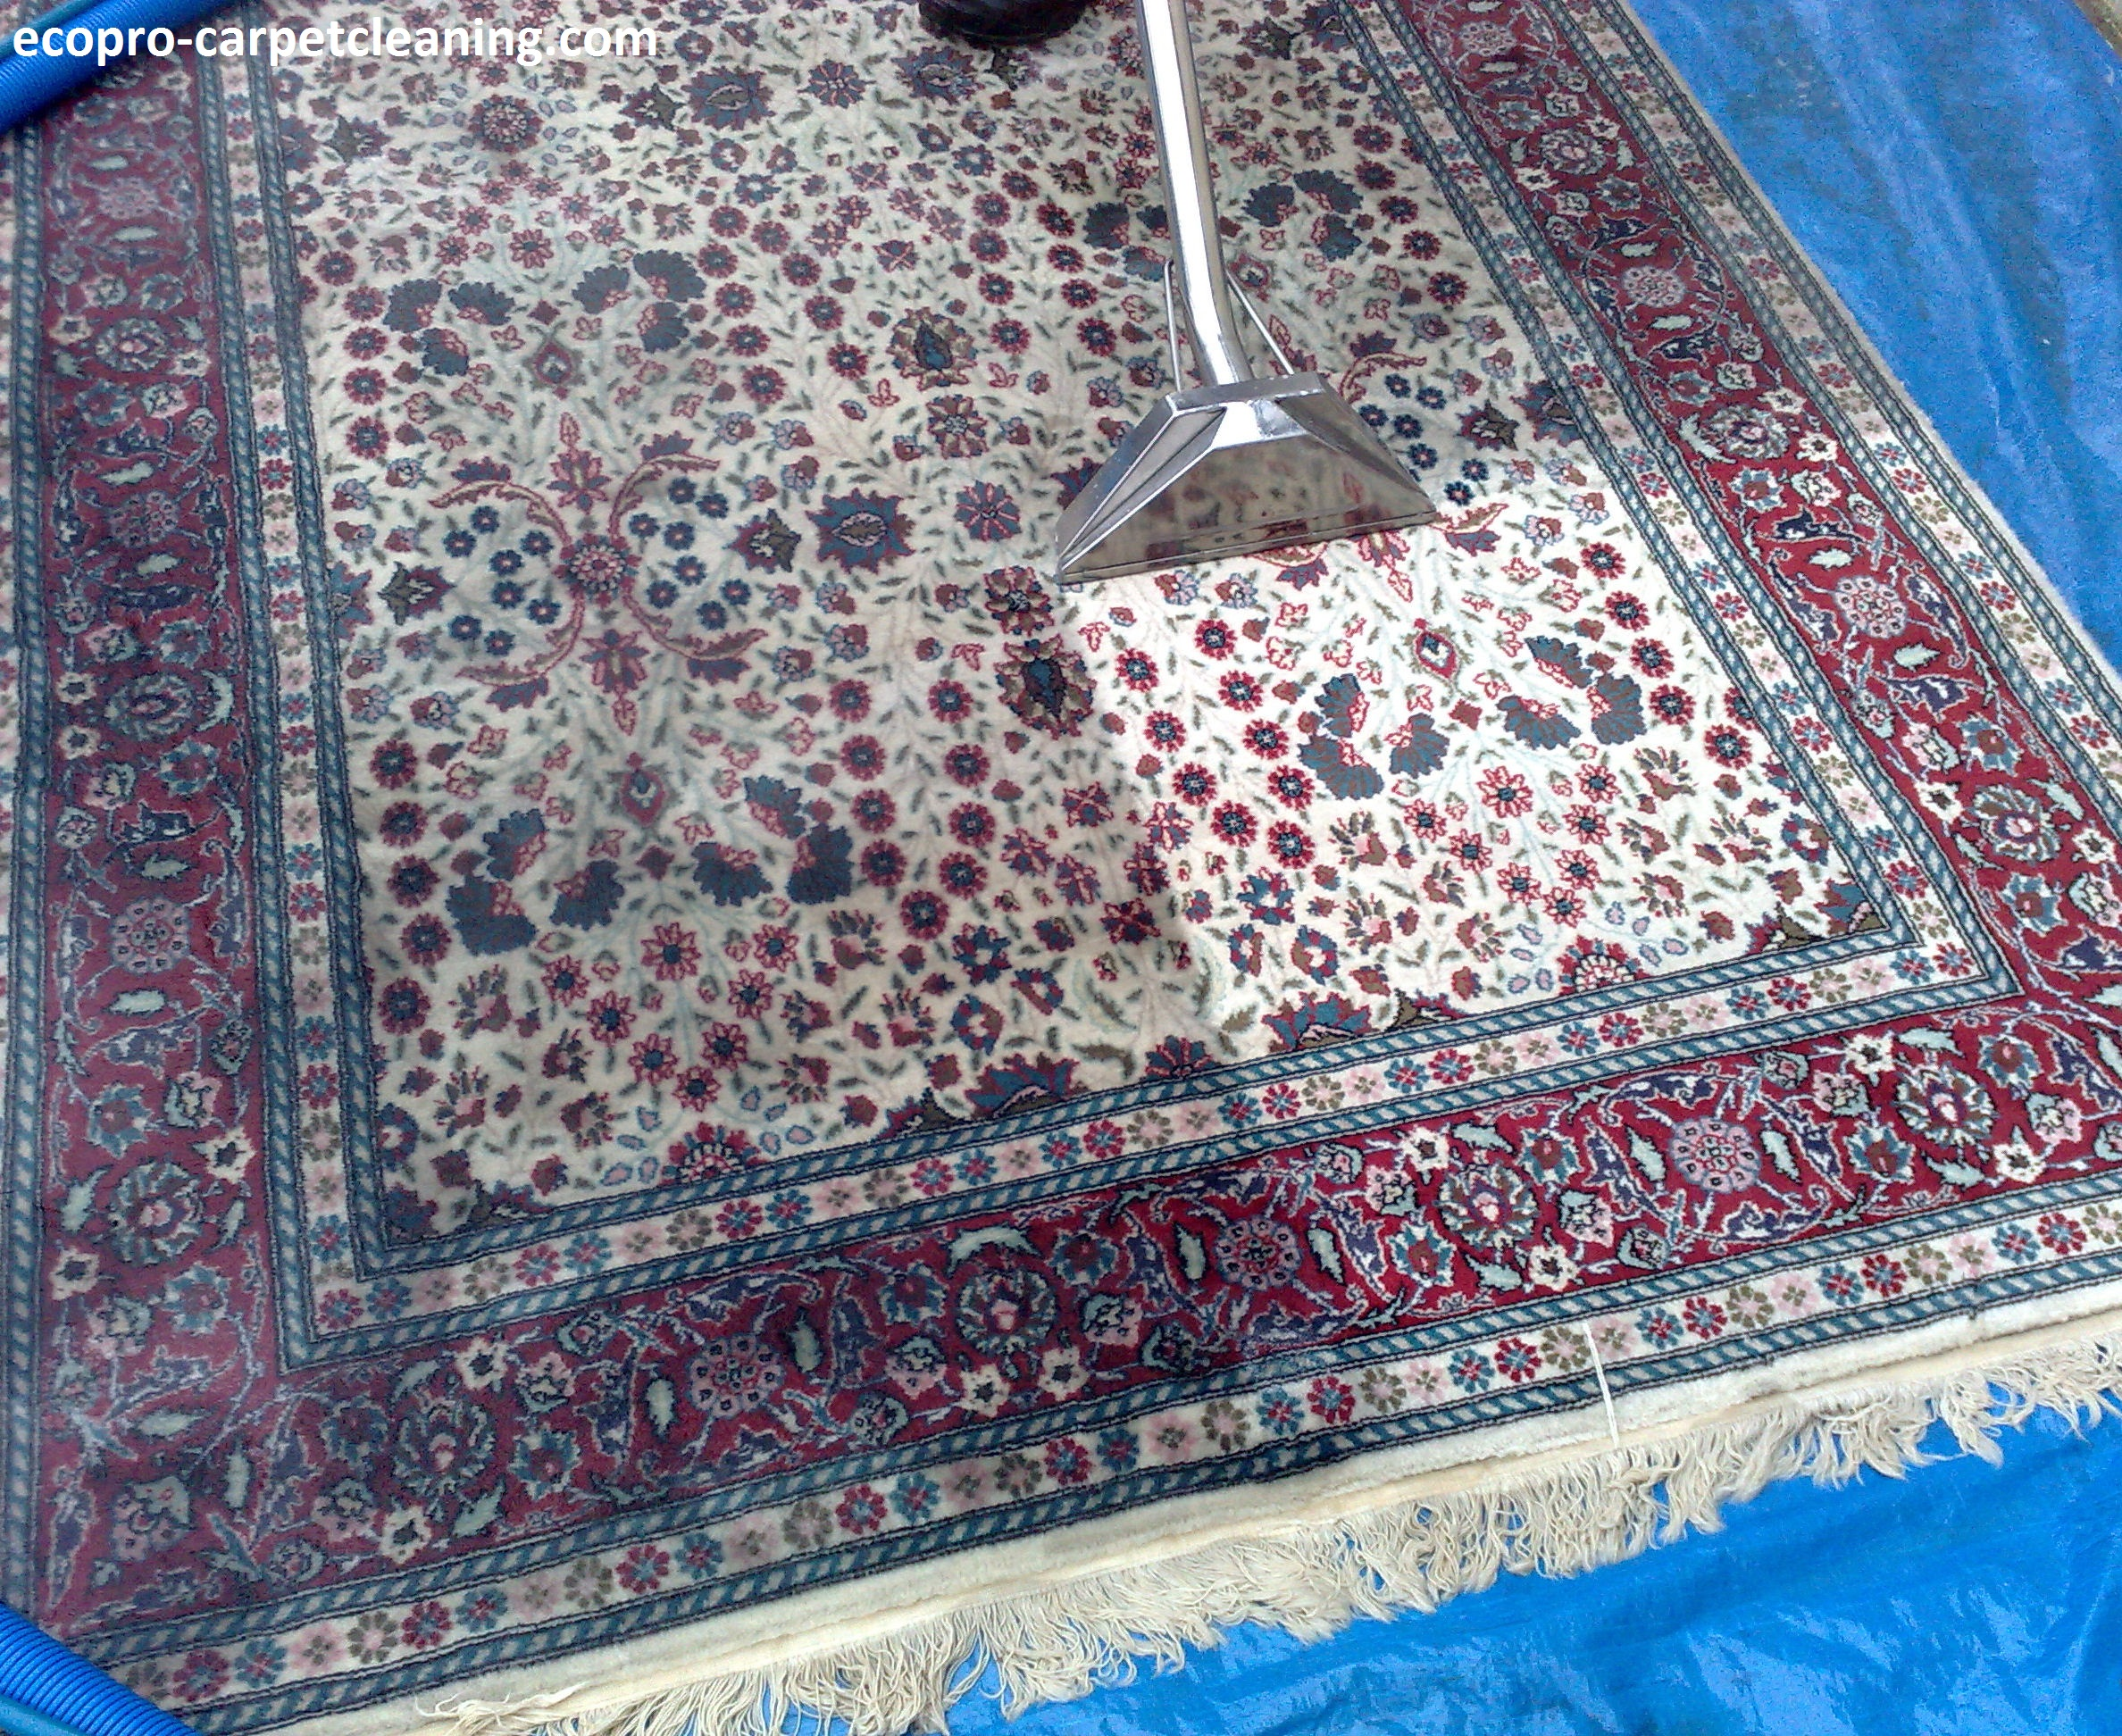 Ecopro Carpet Cleaning Is Dealing With All Types Of Rugs